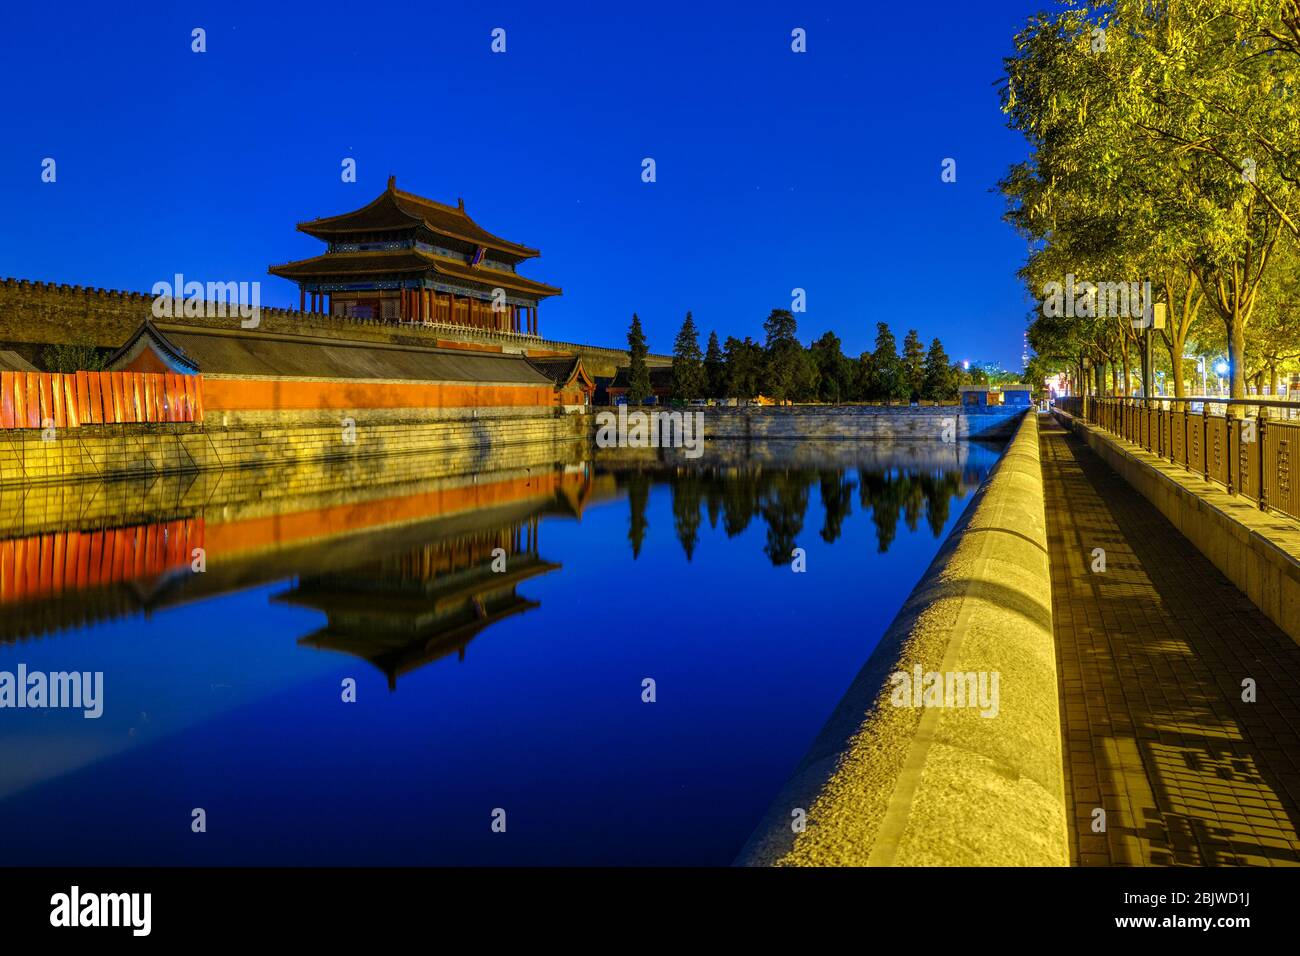 The Gate of Divine Might, North exit gate of the Forbidden City Palace Museum, reflecting in the water moat in Beijing, China Stock Photo